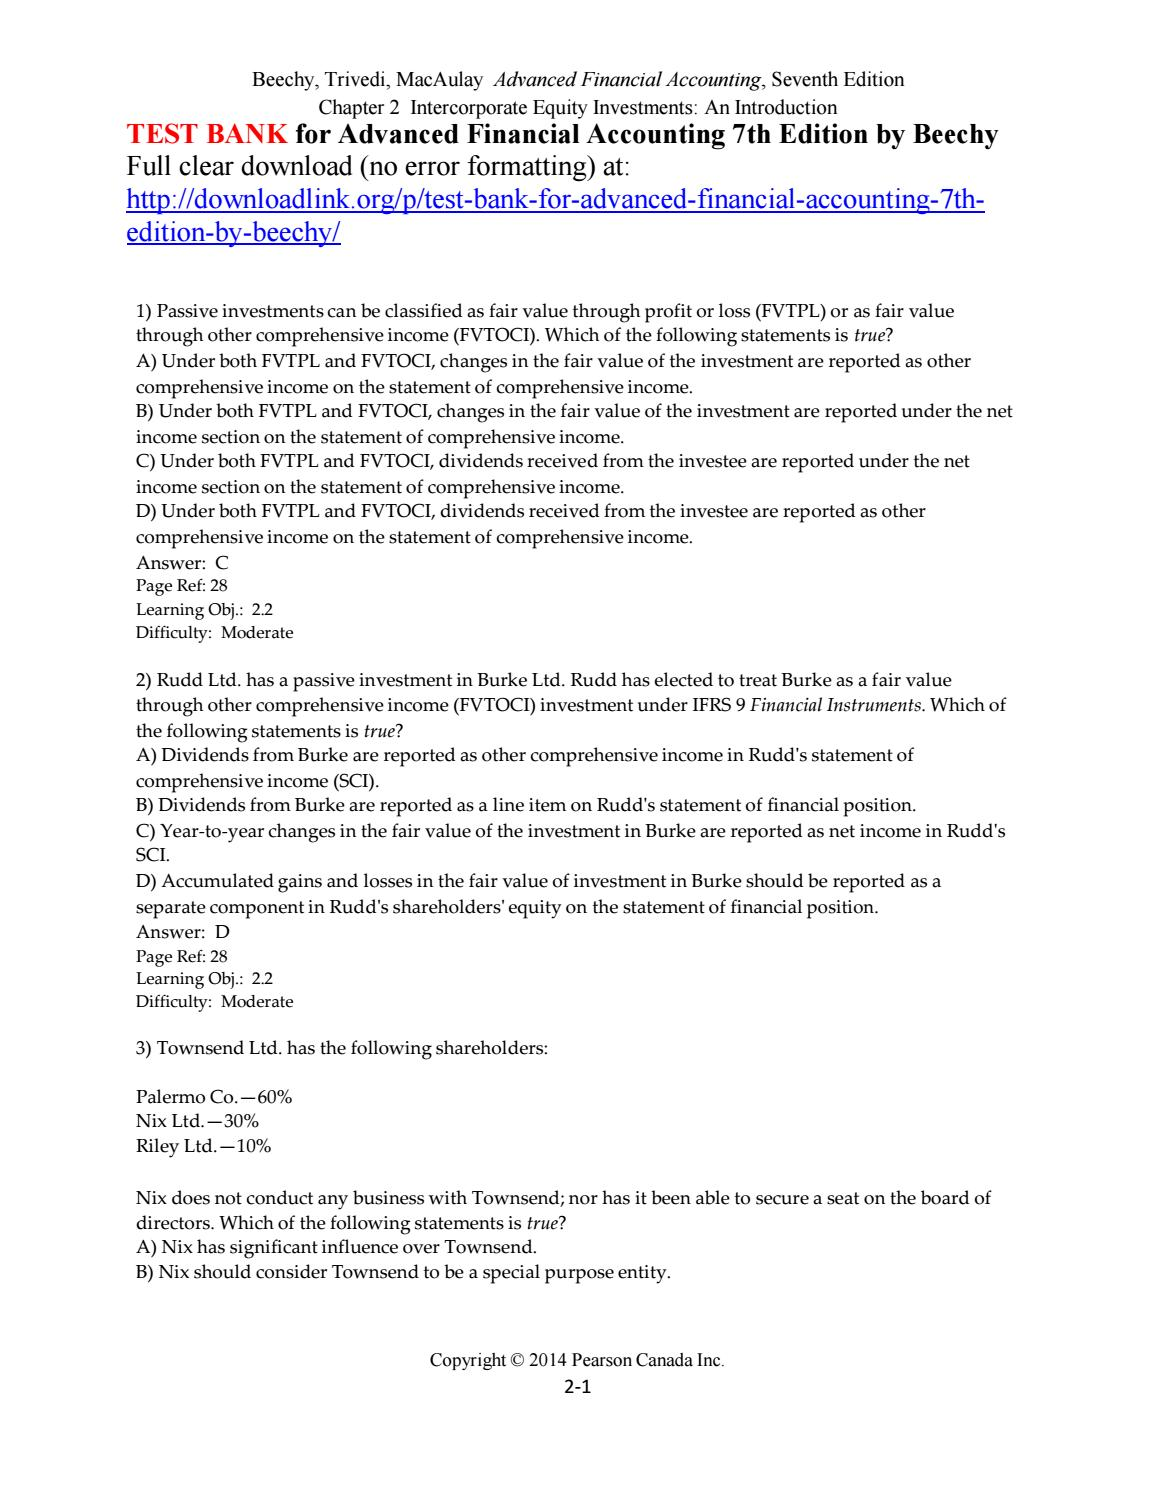 Test Bank for Advanced Financial Accounting 7th Edition by Beechy by  Mike8795448 - issuu